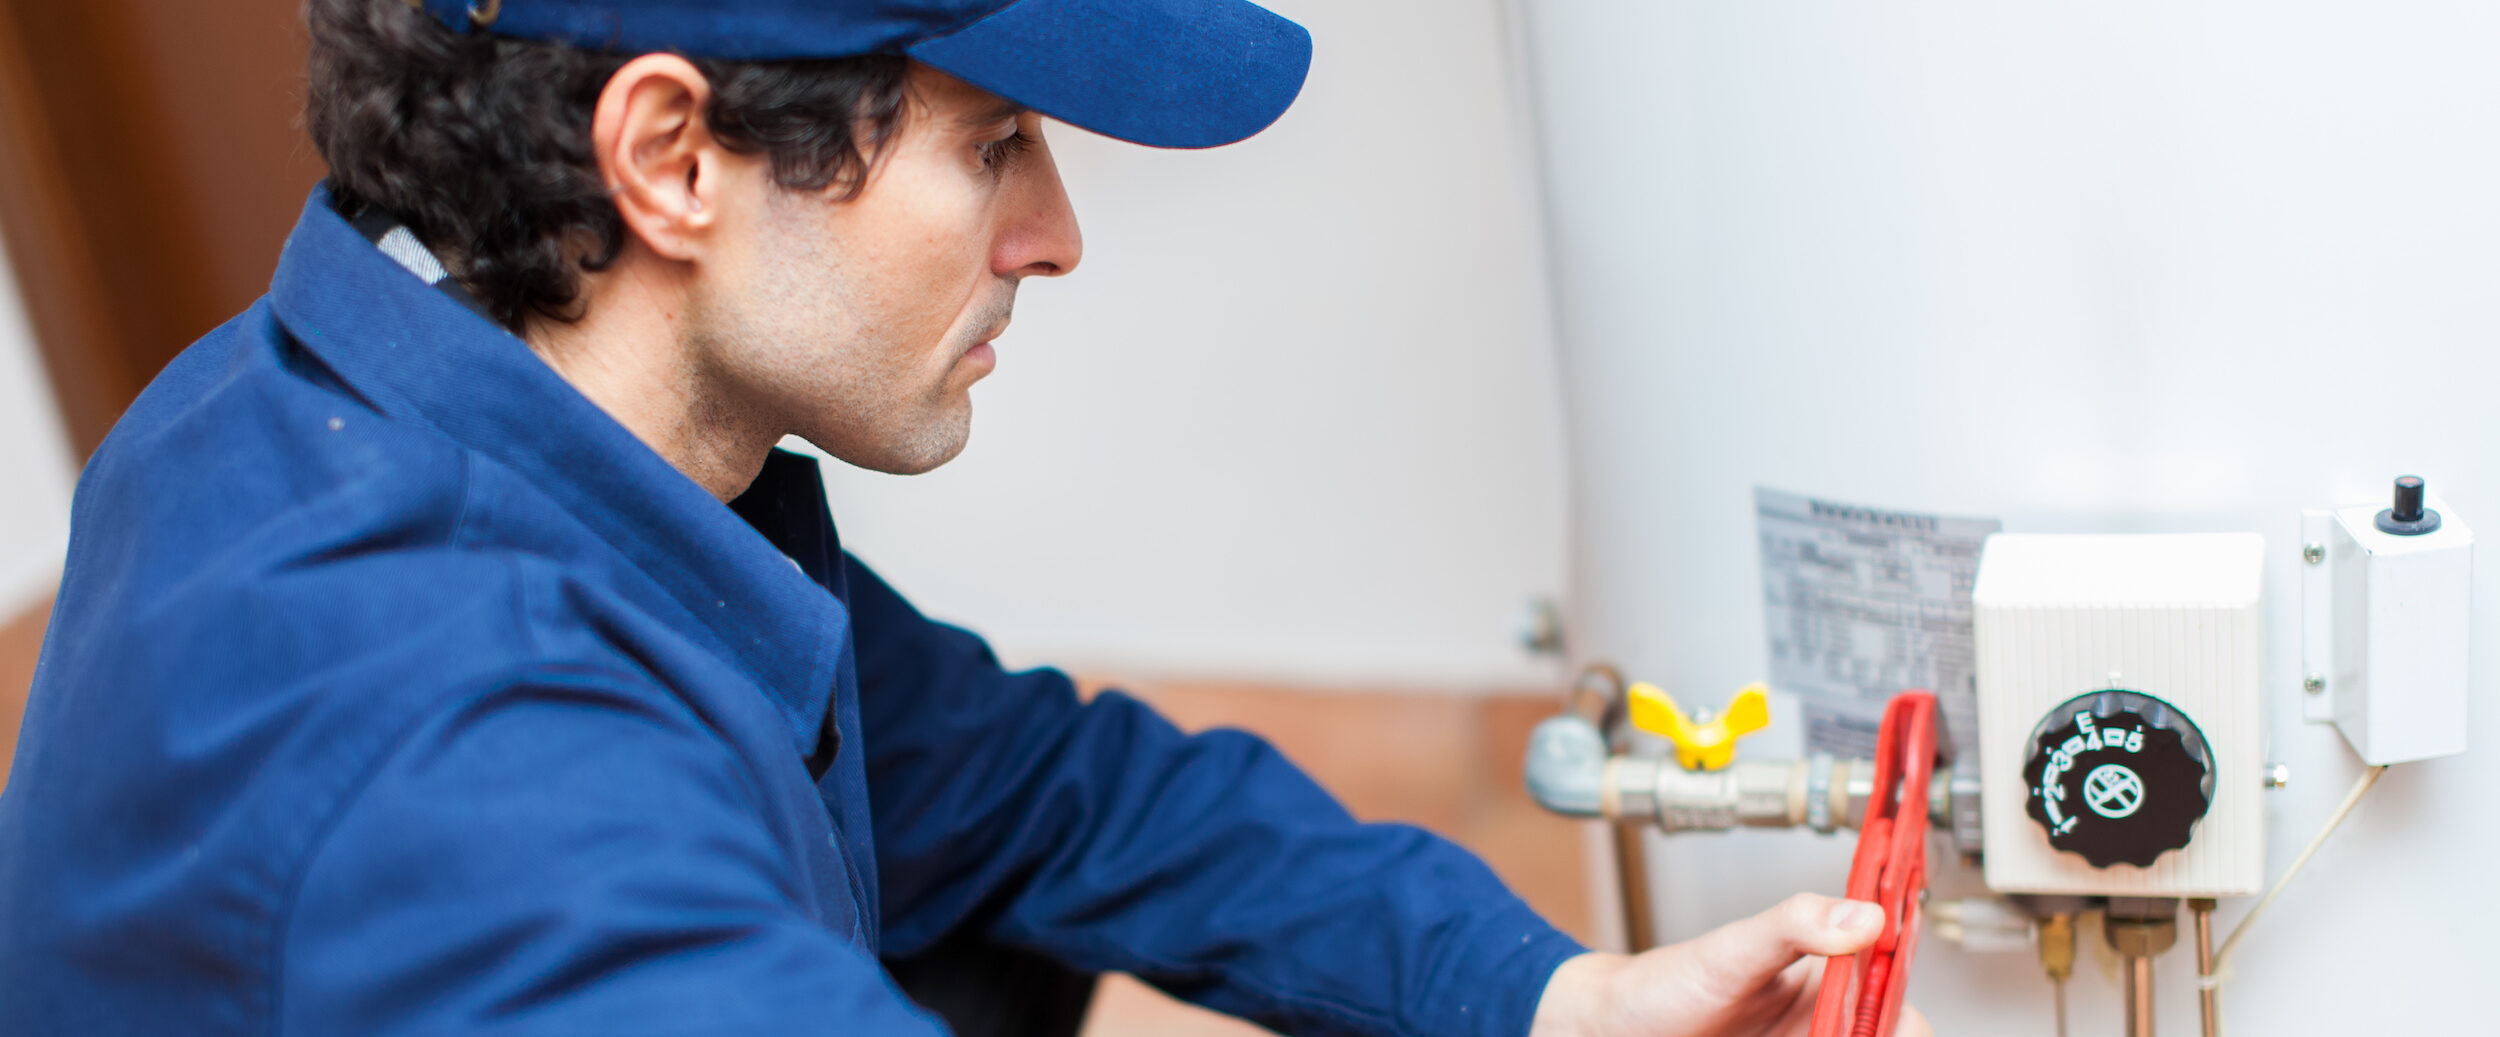 Plumber Working On Hot Water Heater